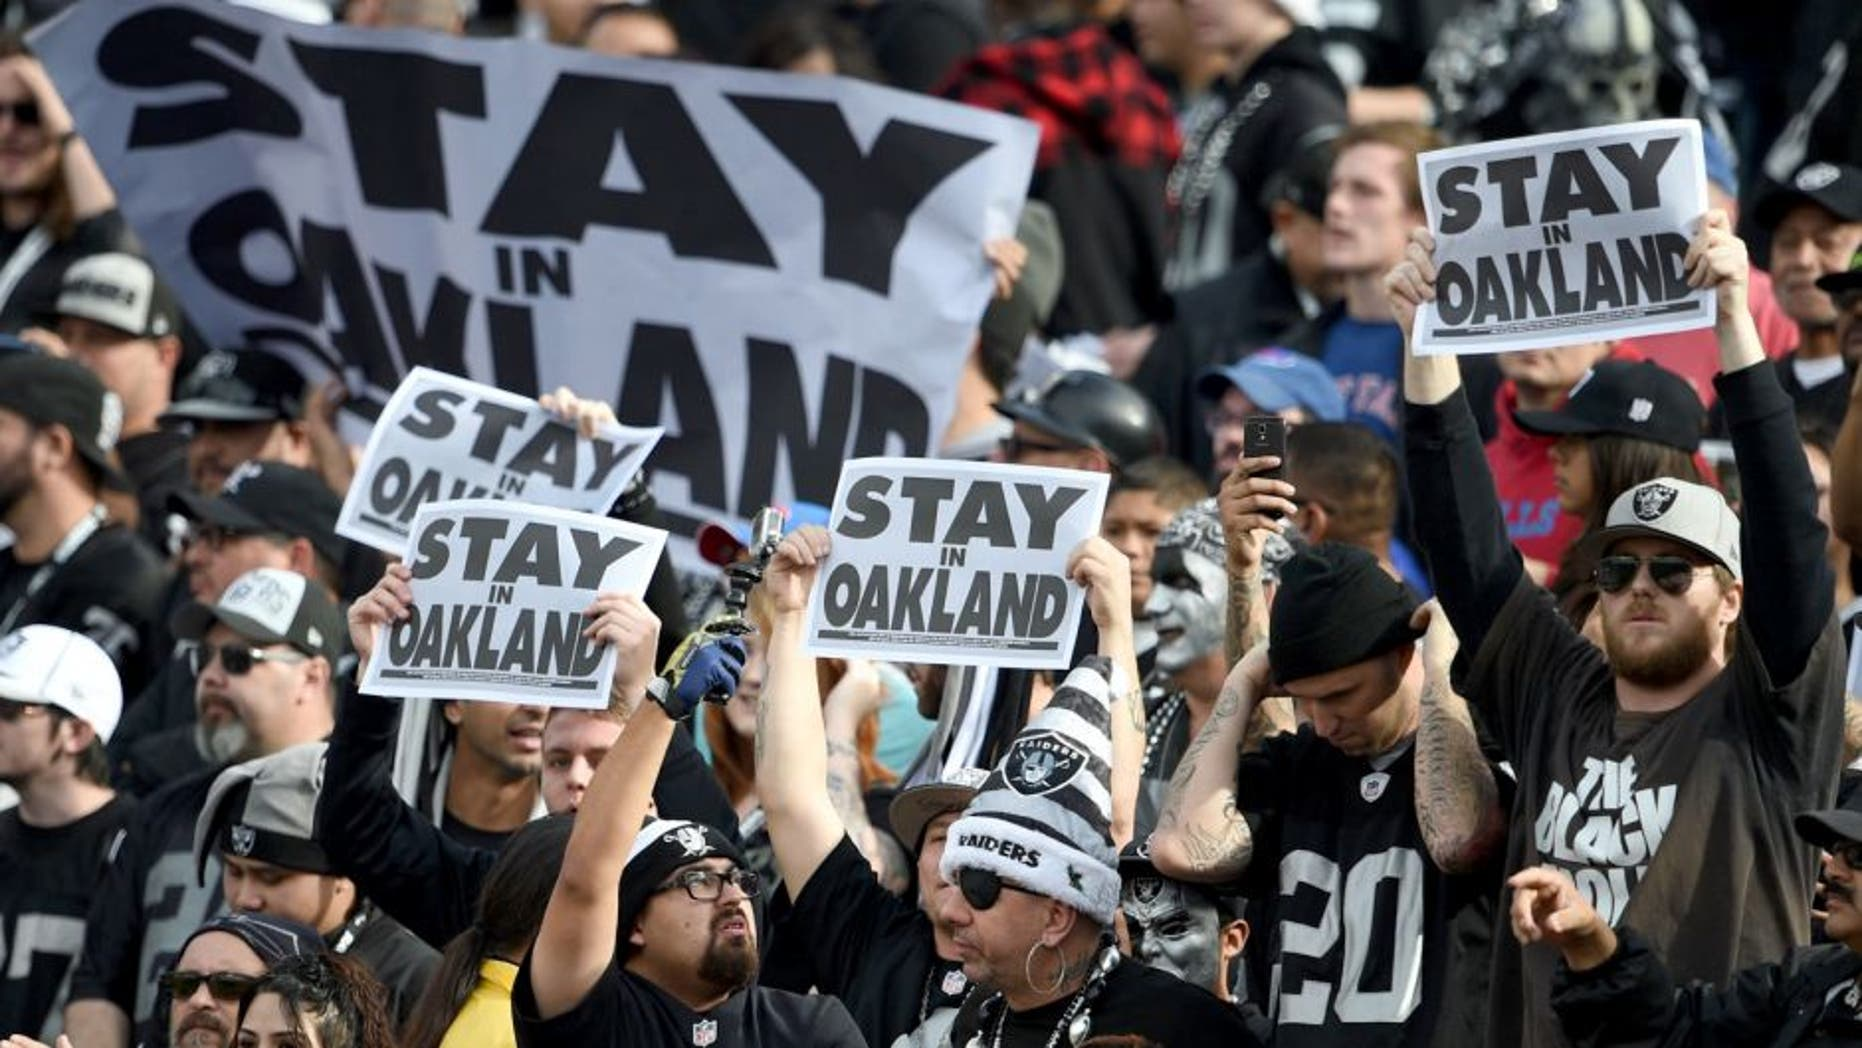 December 21, 2014; Oakland, CA, USA; Oakland Raiders fans hold up signs before the game against the Buffalo Bills at O.co Coliseum. Mandatory Credit: Kyle Terada-USA TODAY Sports